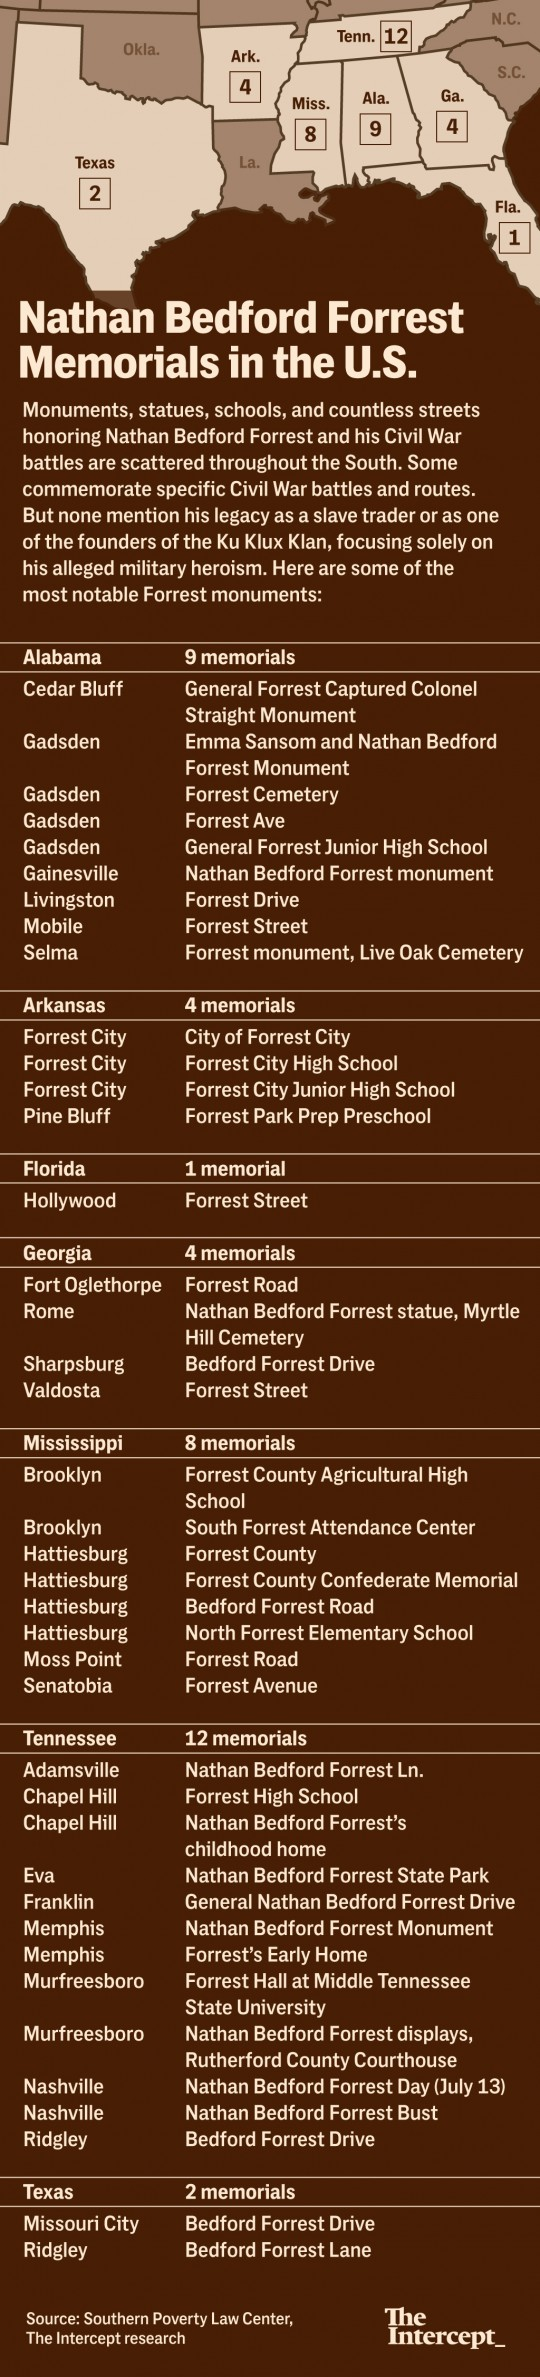 List of Nathan Bedford Forrest Memorials in the U.S.